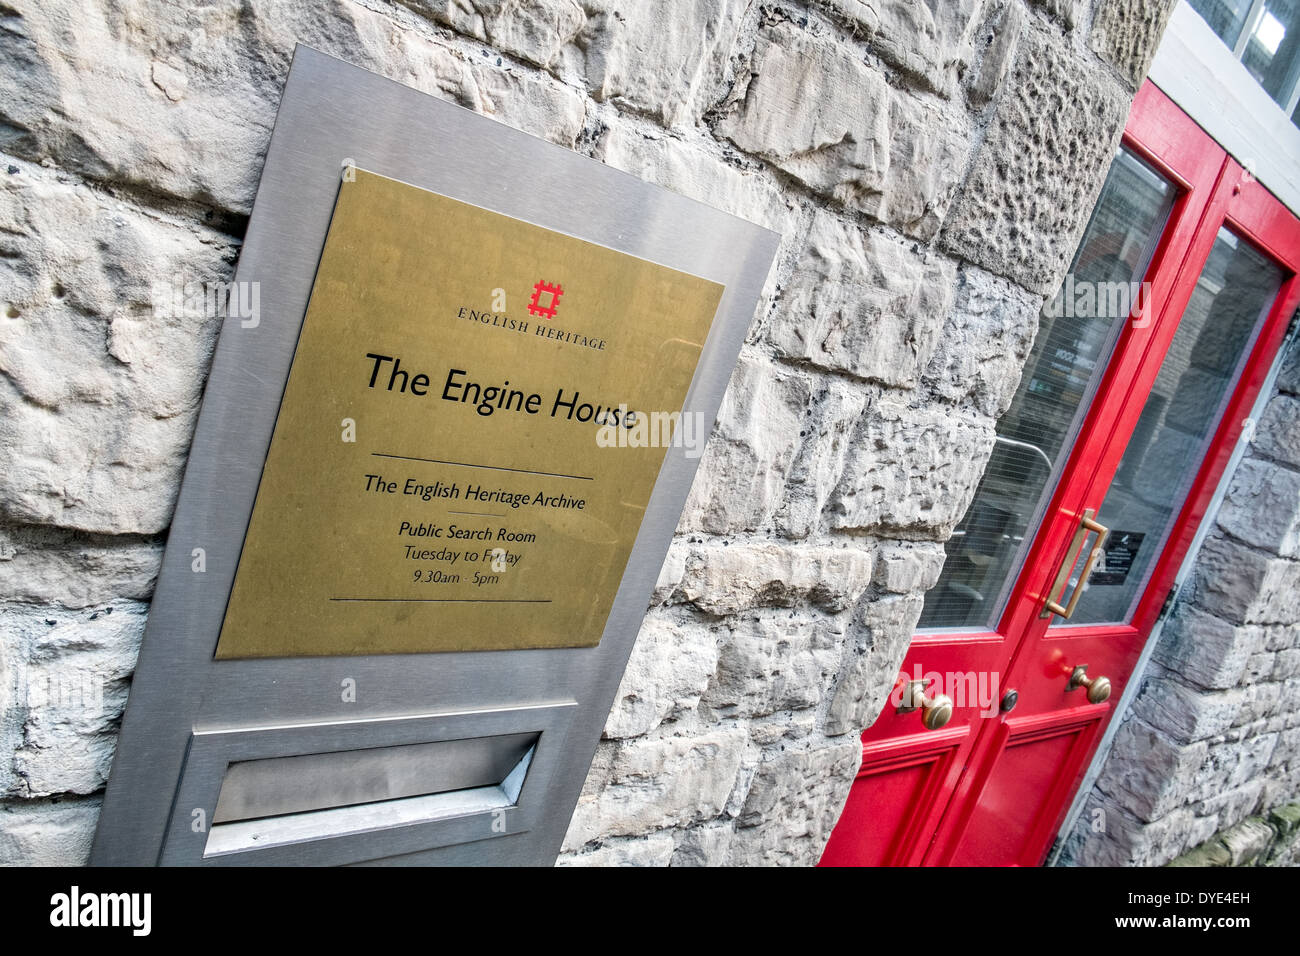 The sign & the entrance to The Engine House, the English Heritage Archive & office at Swindon - Stock Image